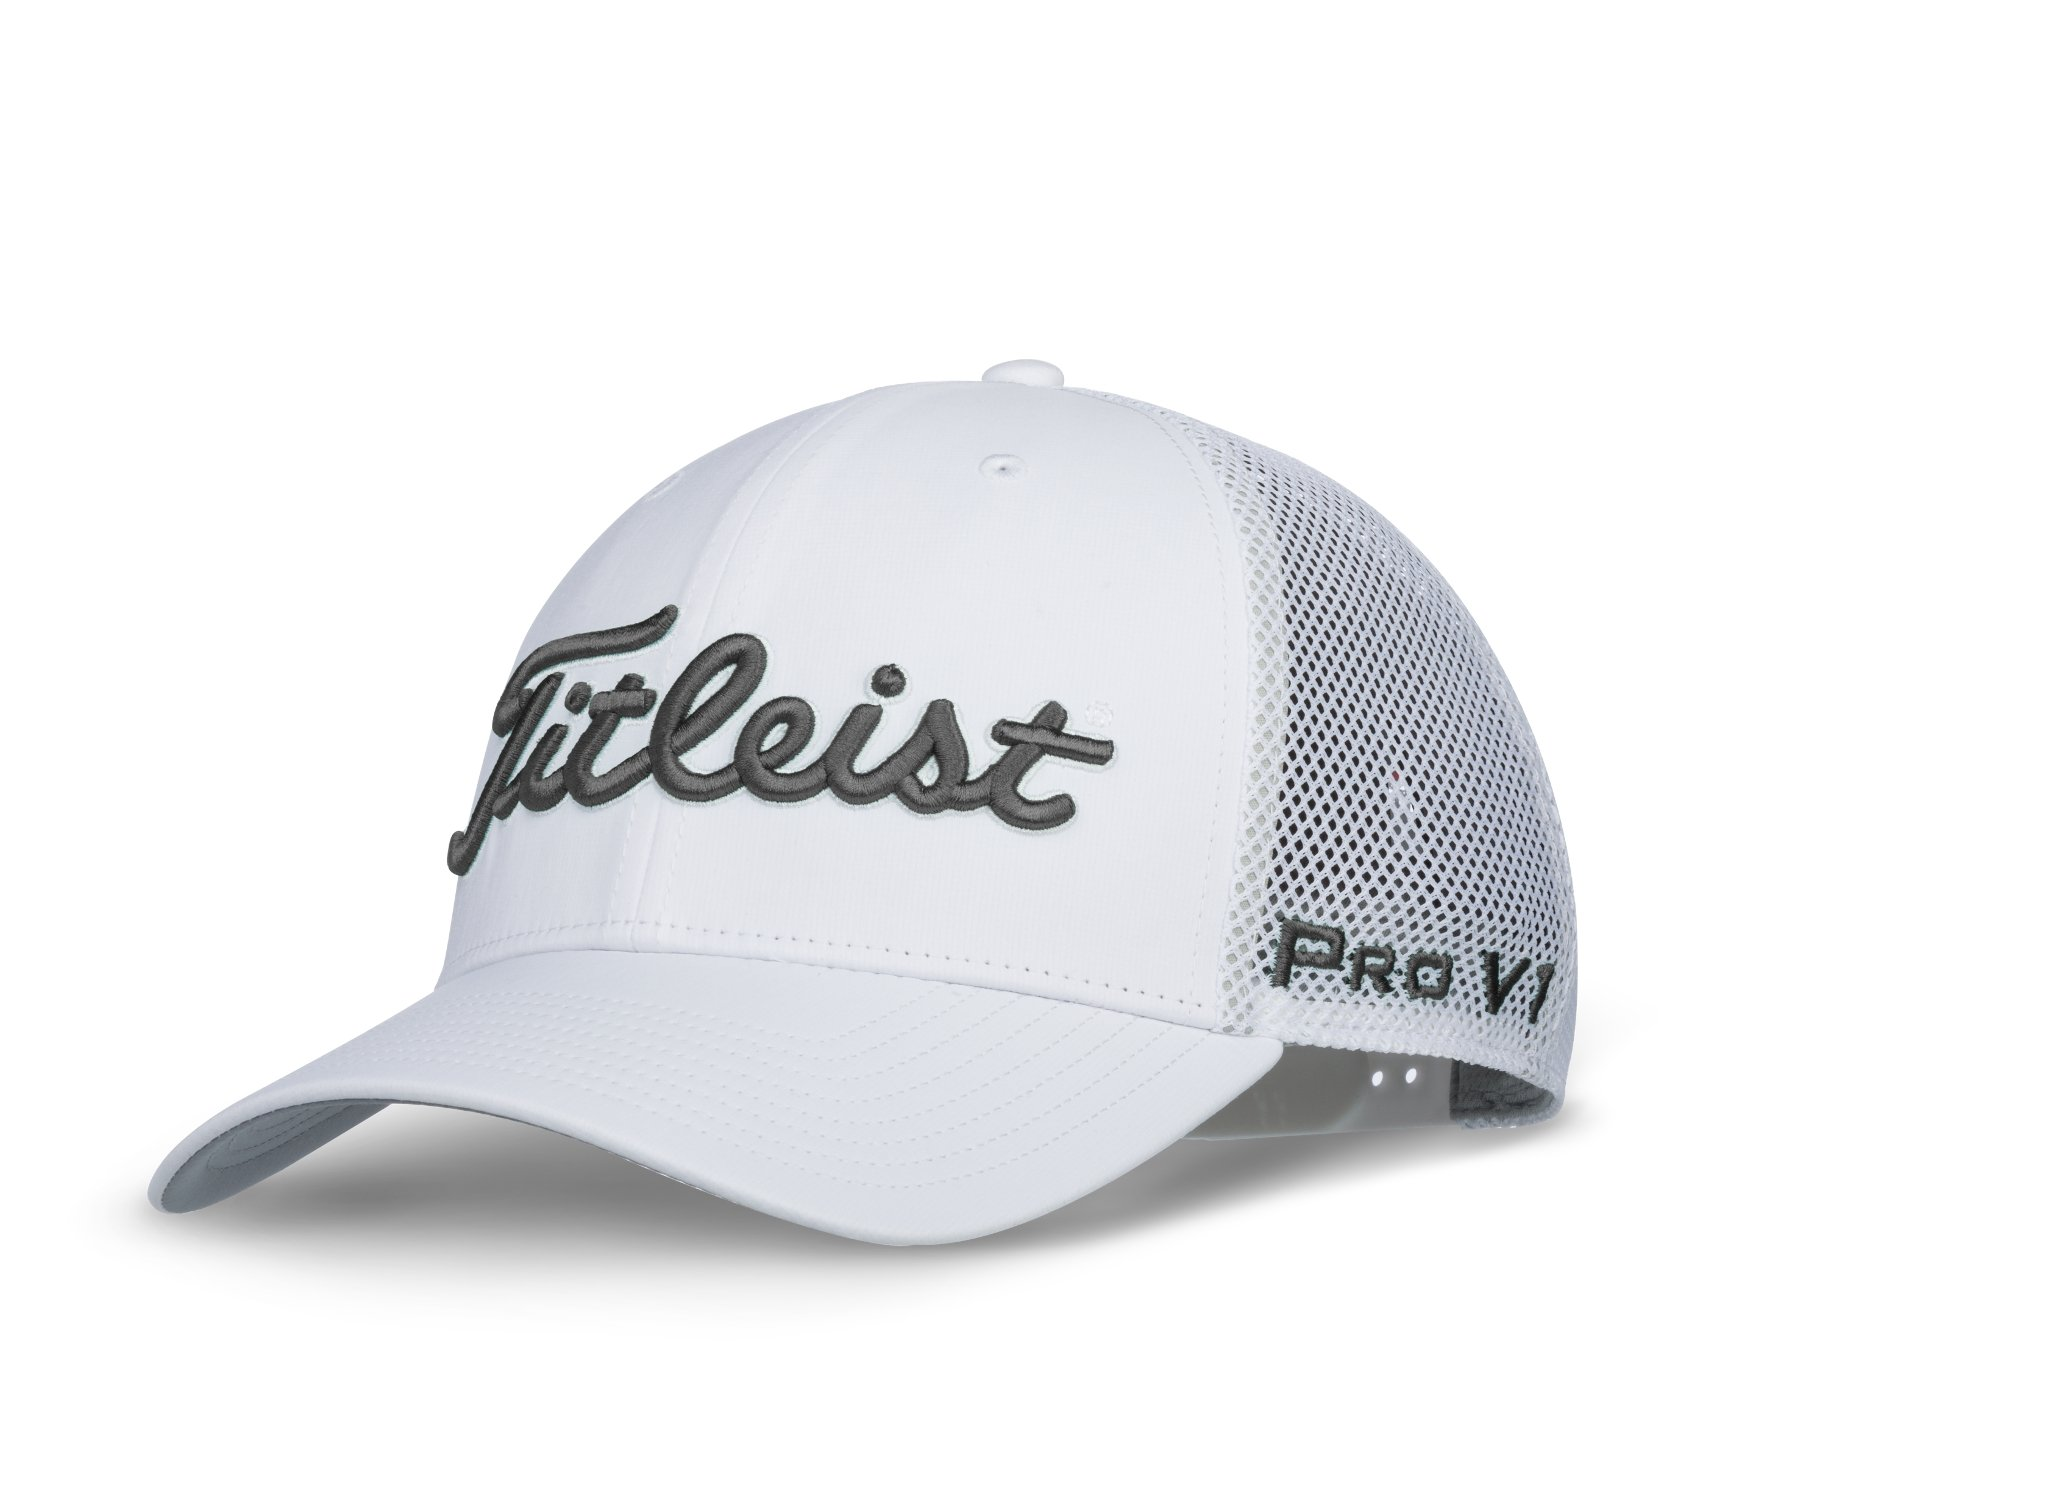 Titleist Golf- Tour Snapback Mesh Cap White Collection 61bac4a15e0f